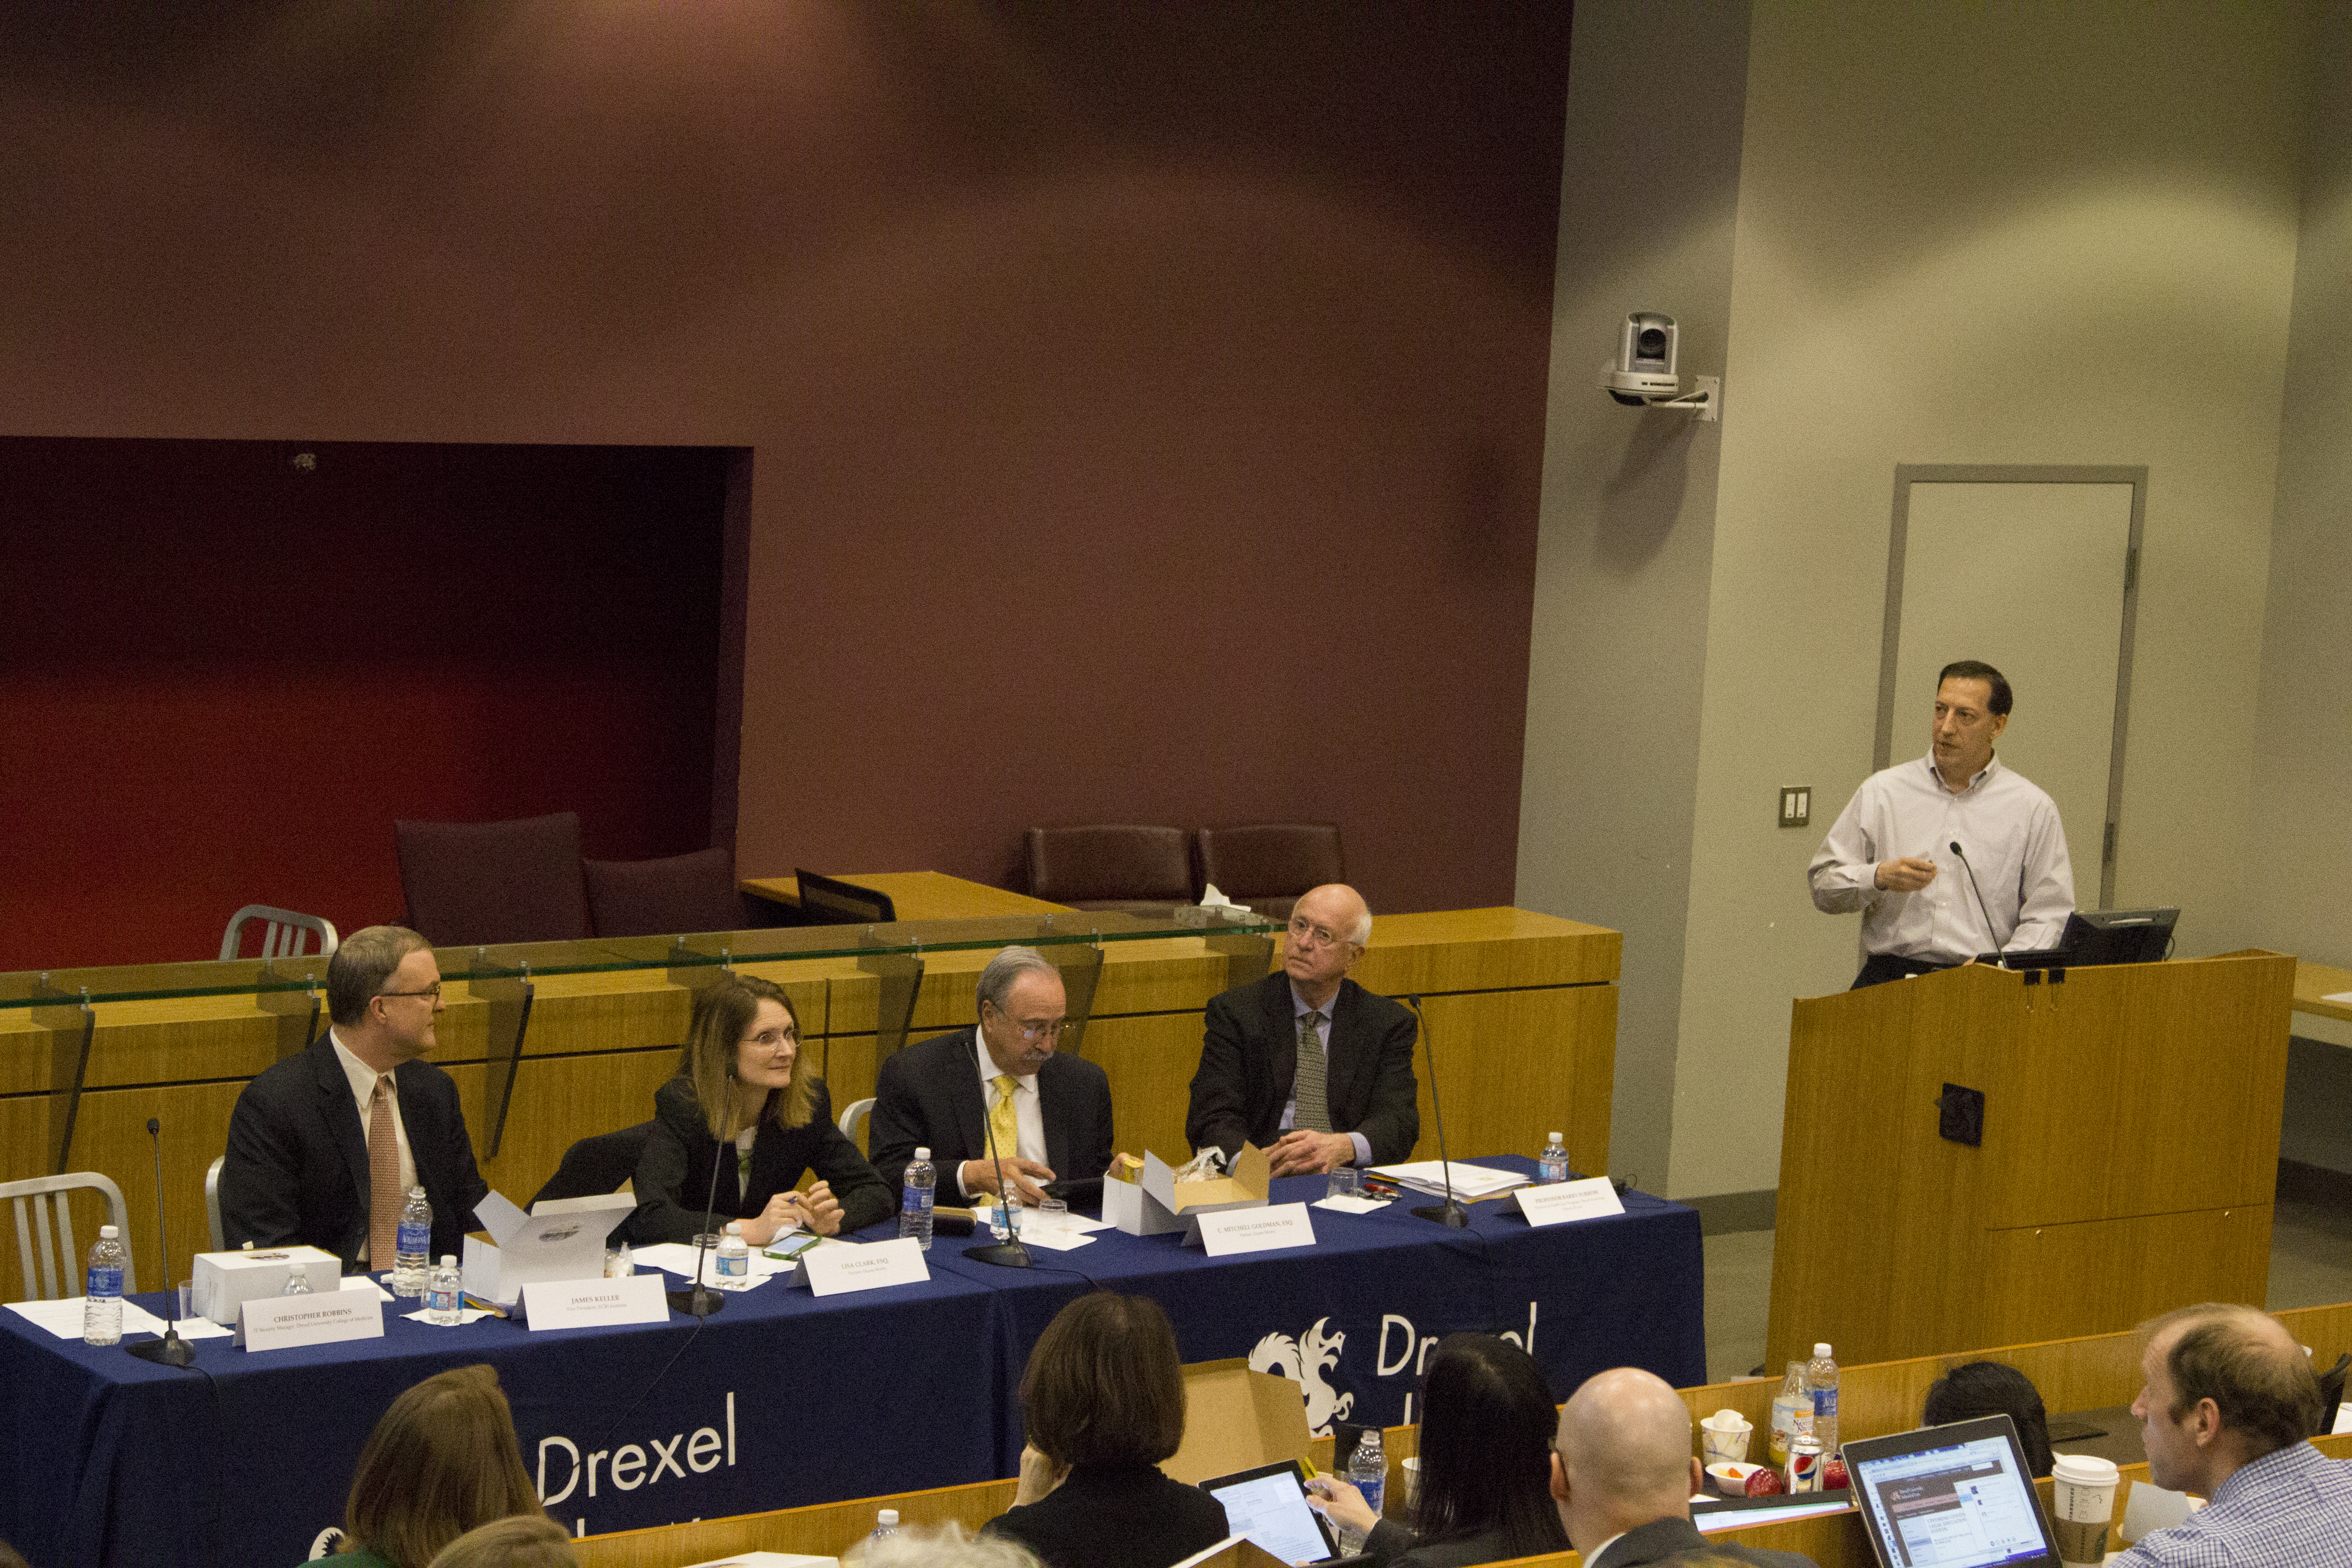 mHealth law and regulatory panel